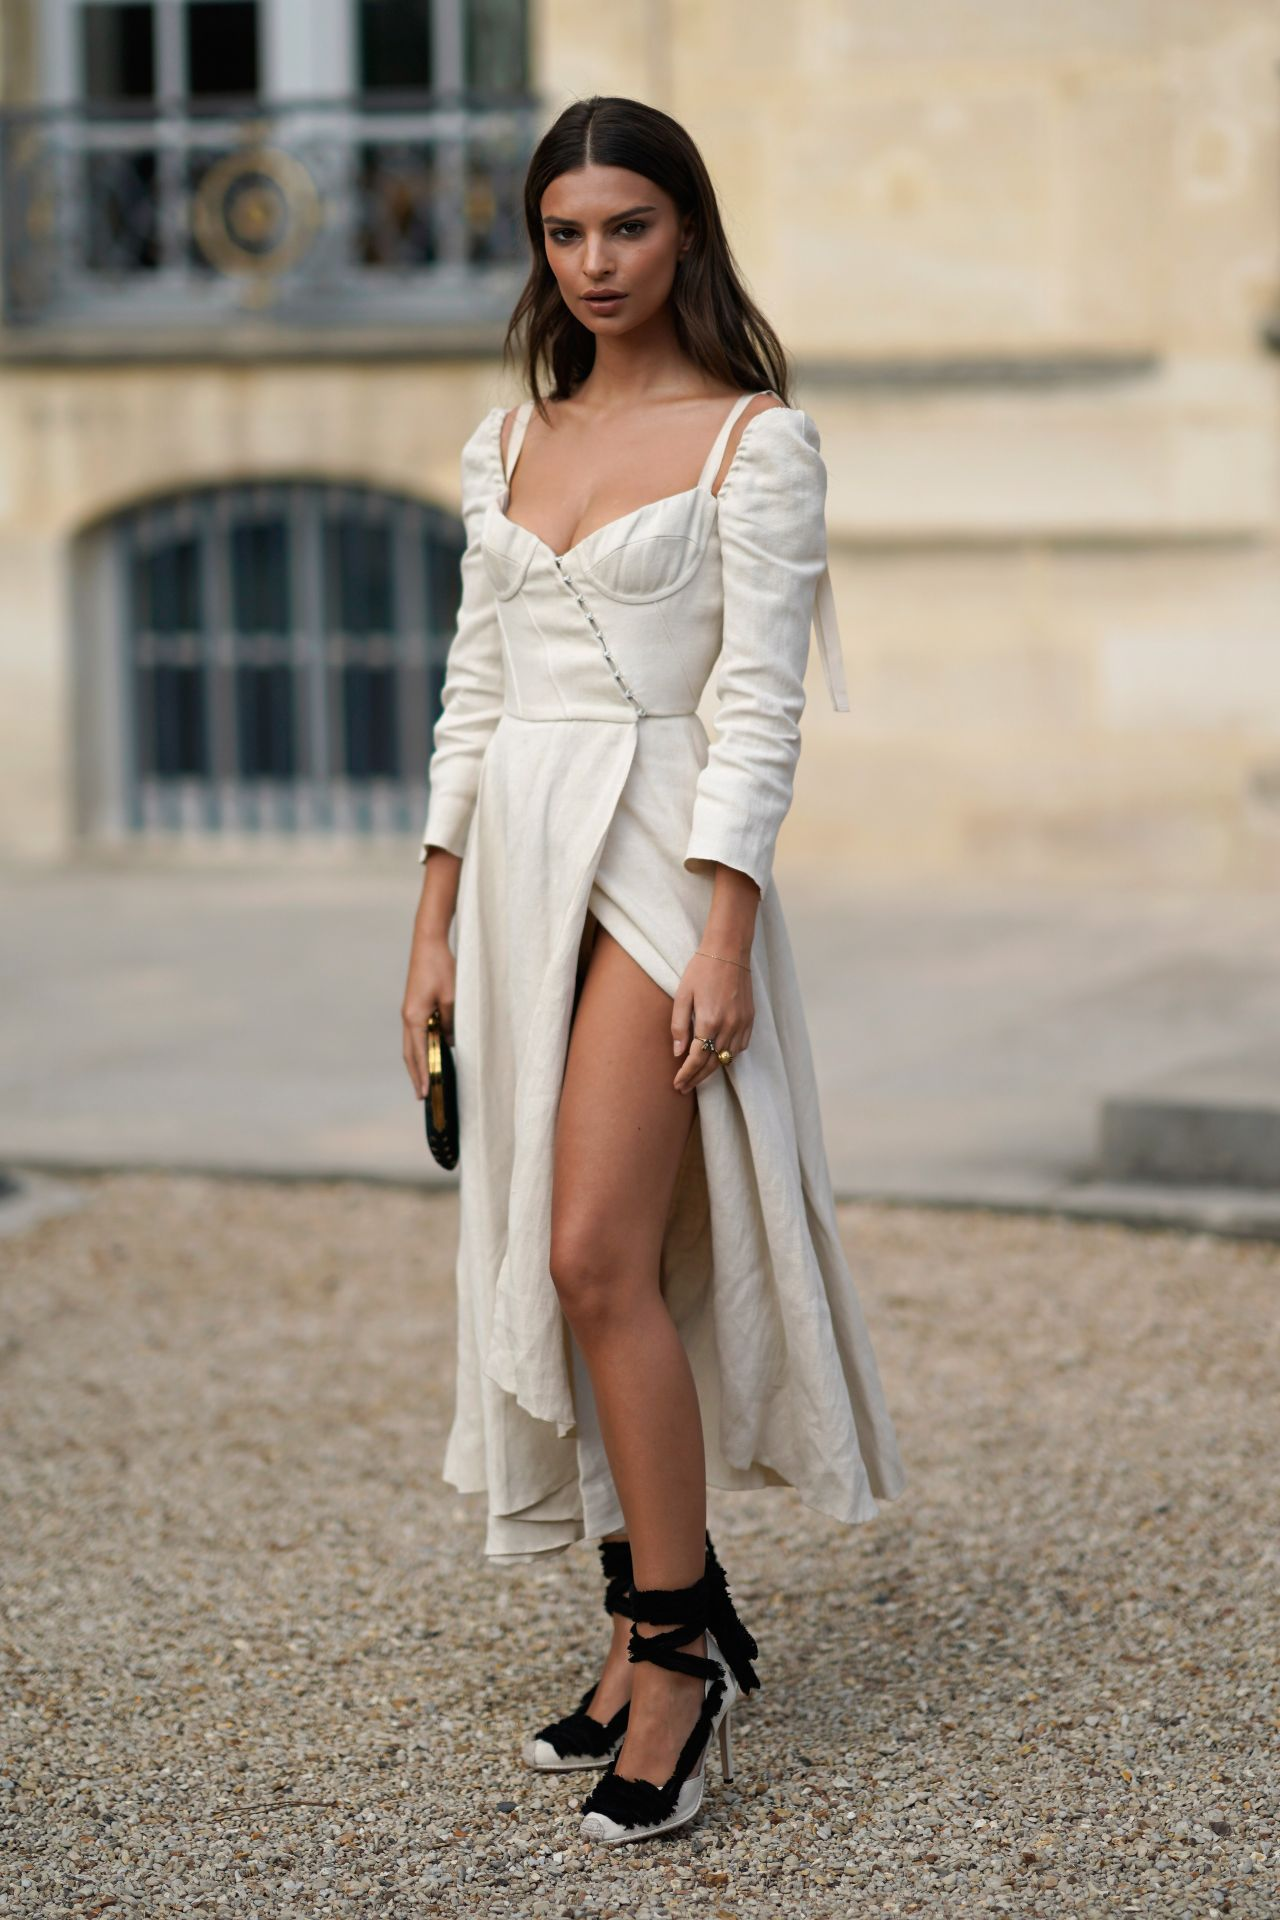 emily-ratajkowski-christian-dior-fashion-show-in-paris-09-26-2017-15.jpg